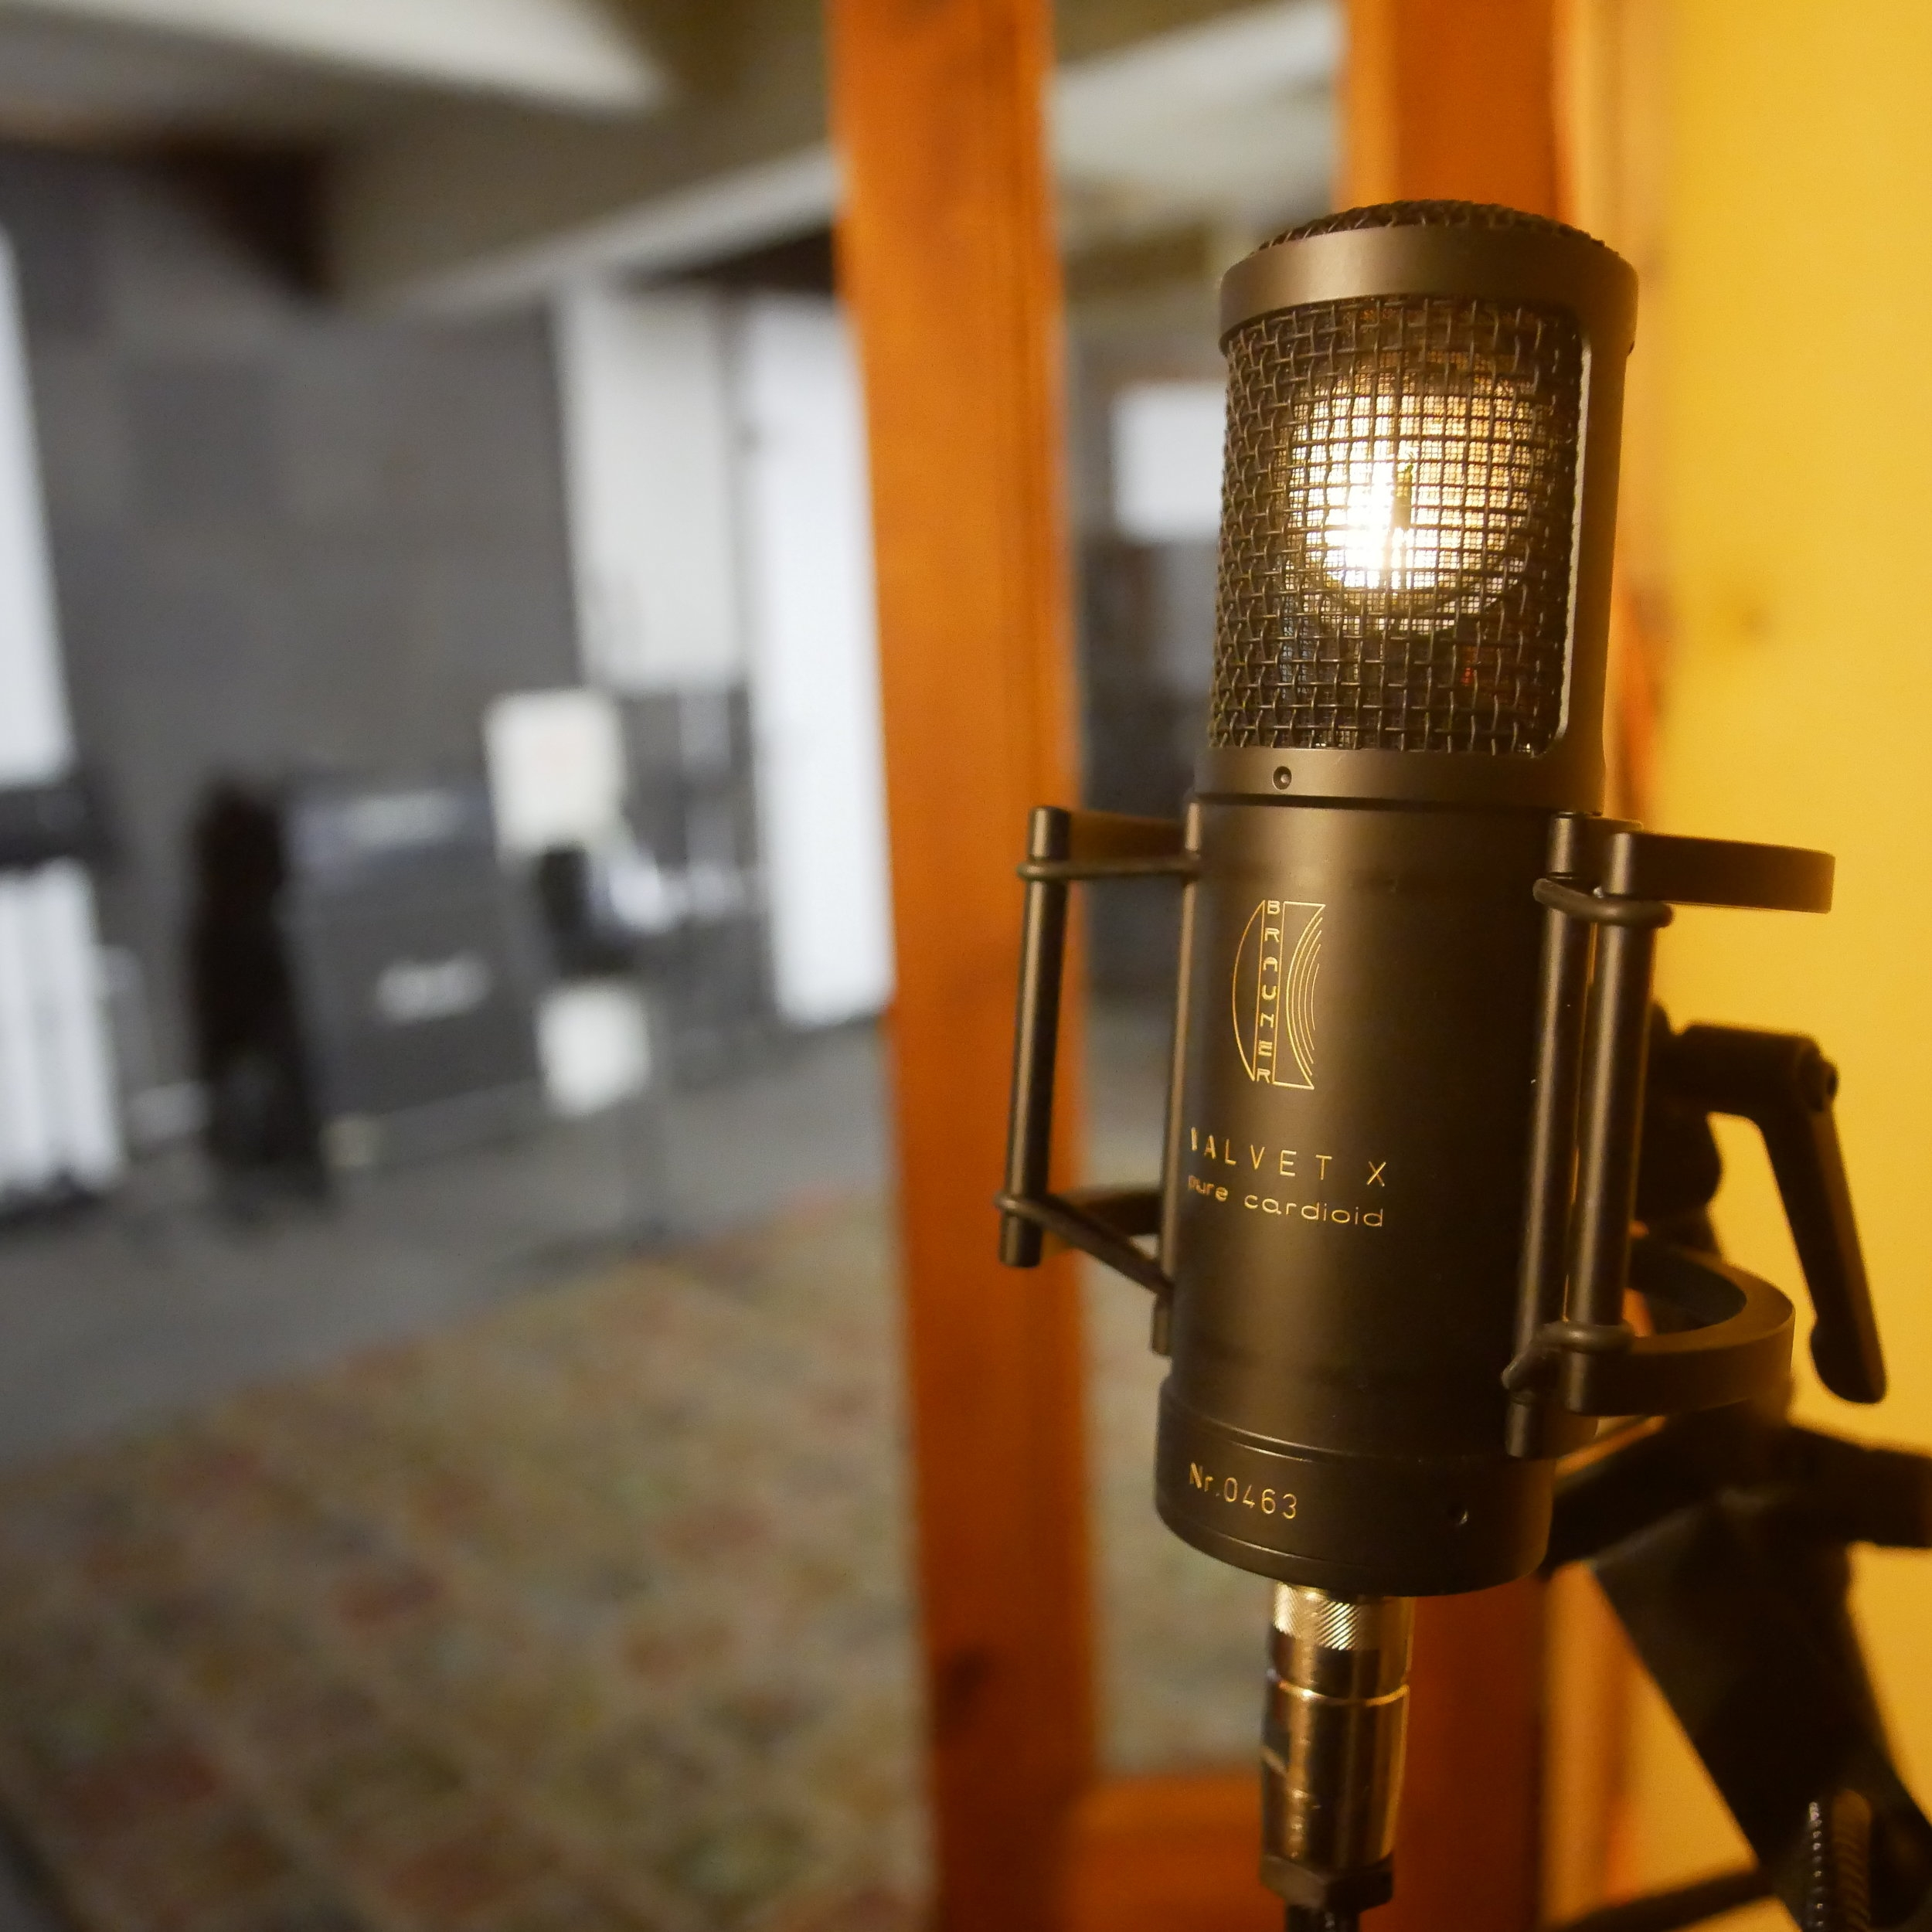 Recording - Having worked on hundreds of projects over the years, I have the knowledge and quality microphones to capture the best of what's thrown at me. Whether you are looking to lay down some top lines, record a live video or produce a studio quality album, I will work with you to deliver it to the highest possible standard. Check out my discography.